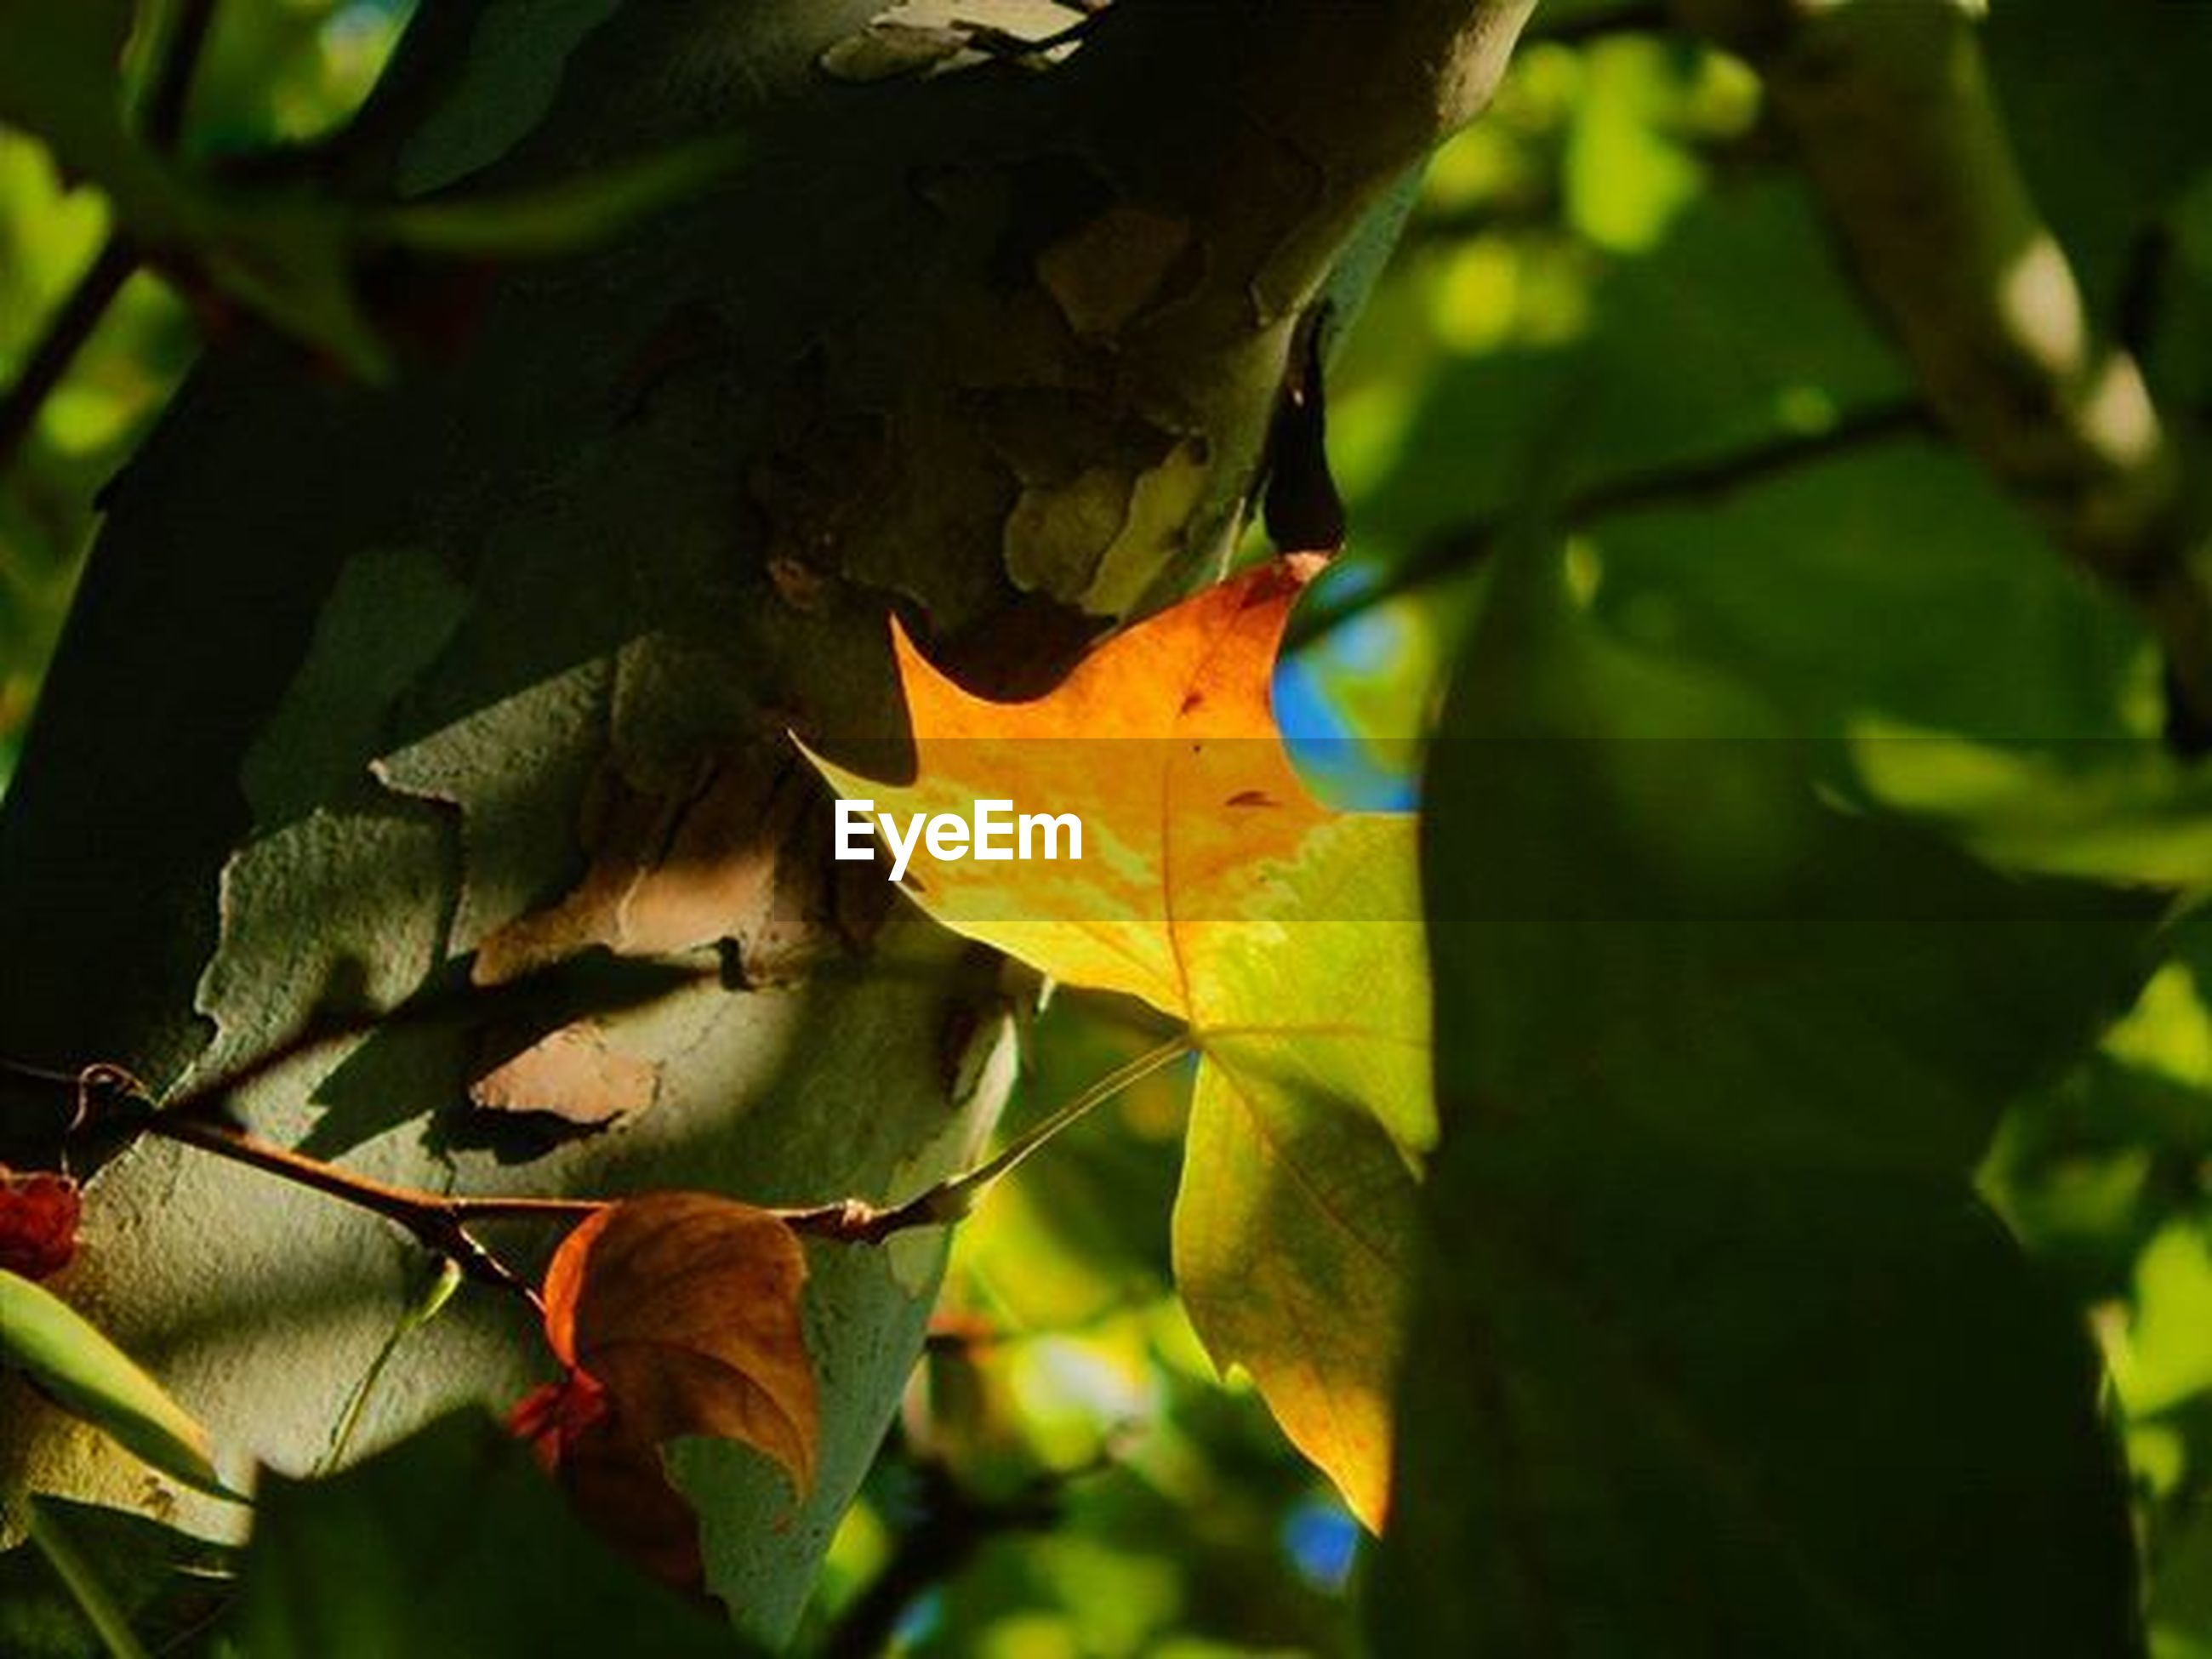 leaf, autumn, change, leaf vein, leaves, close-up, season, branch, nature, maple leaf, natural pattern, tree, growth, focus on foreground, low angle view, green color, beauty in nature, outdoors, day, orange color